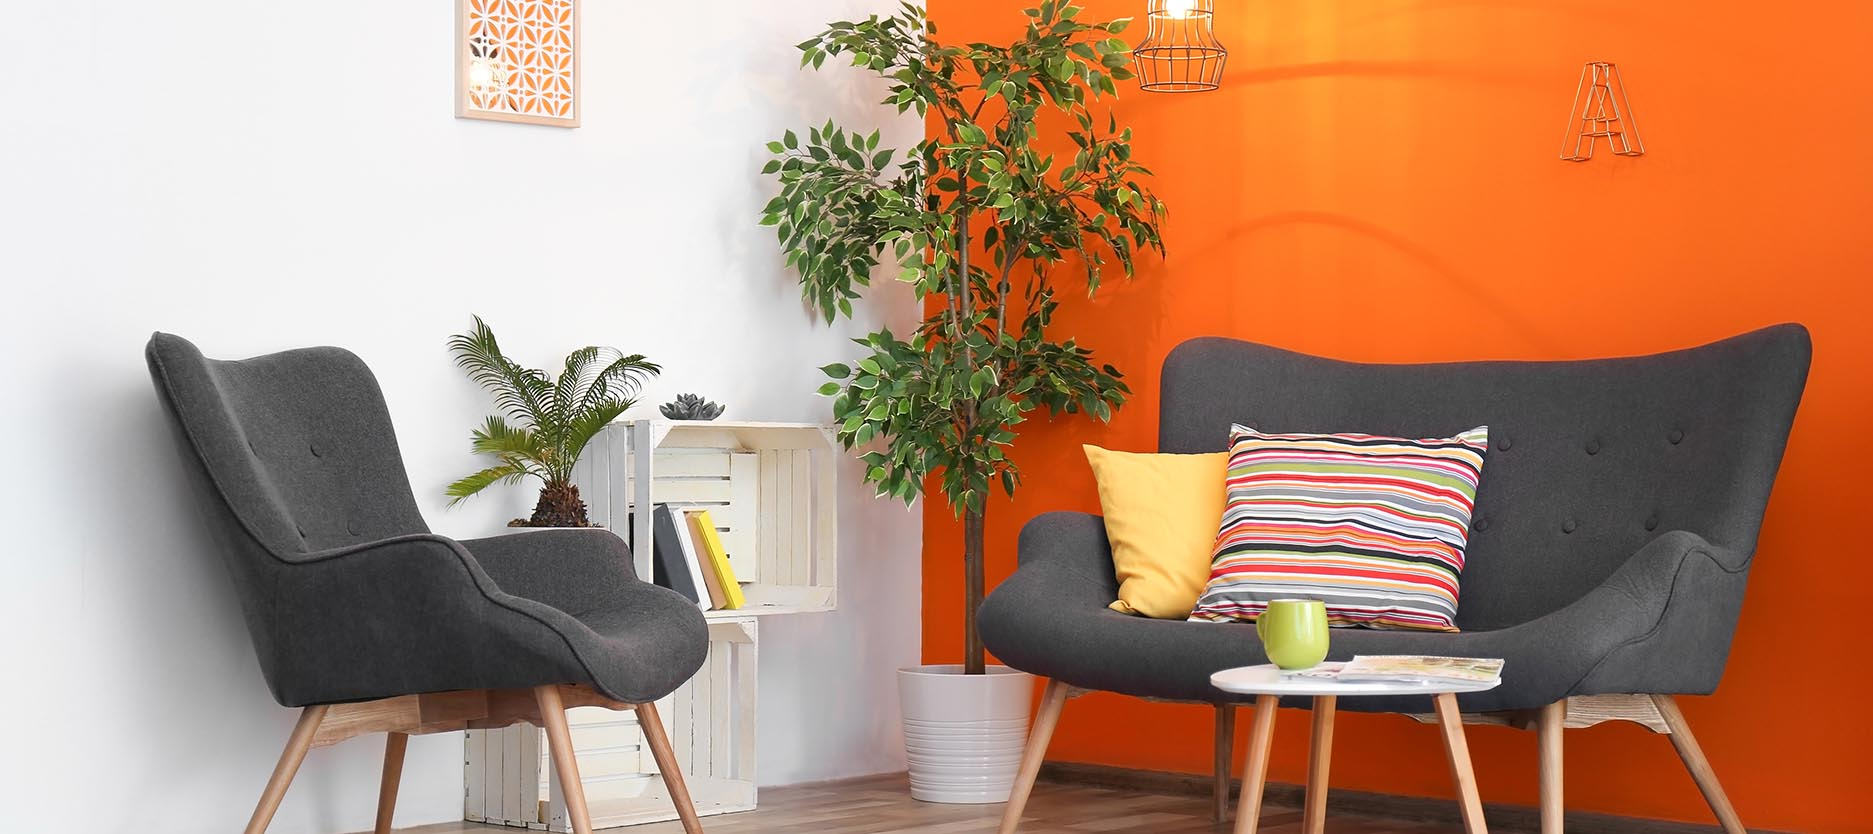 5 Colour Combinations That Go with Orange for Your Home